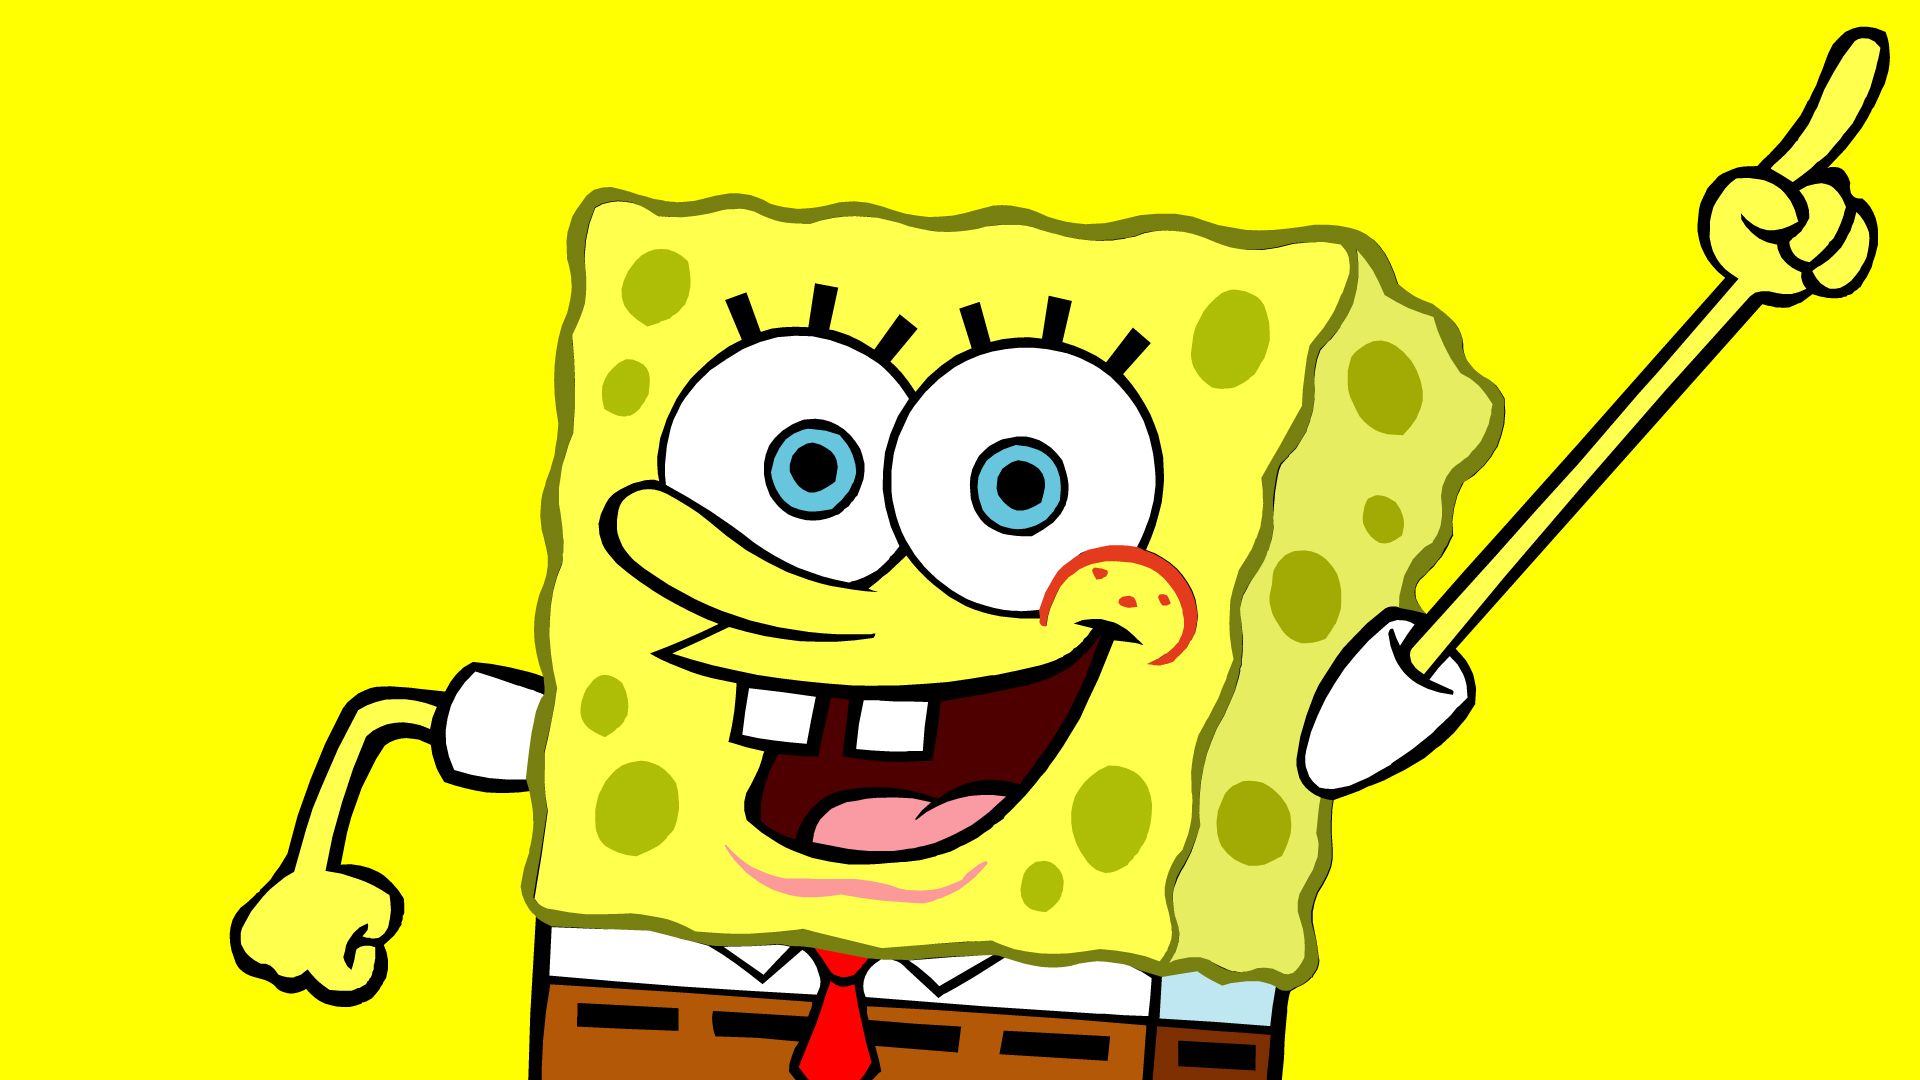 spongebob squarepants wallpaper free download